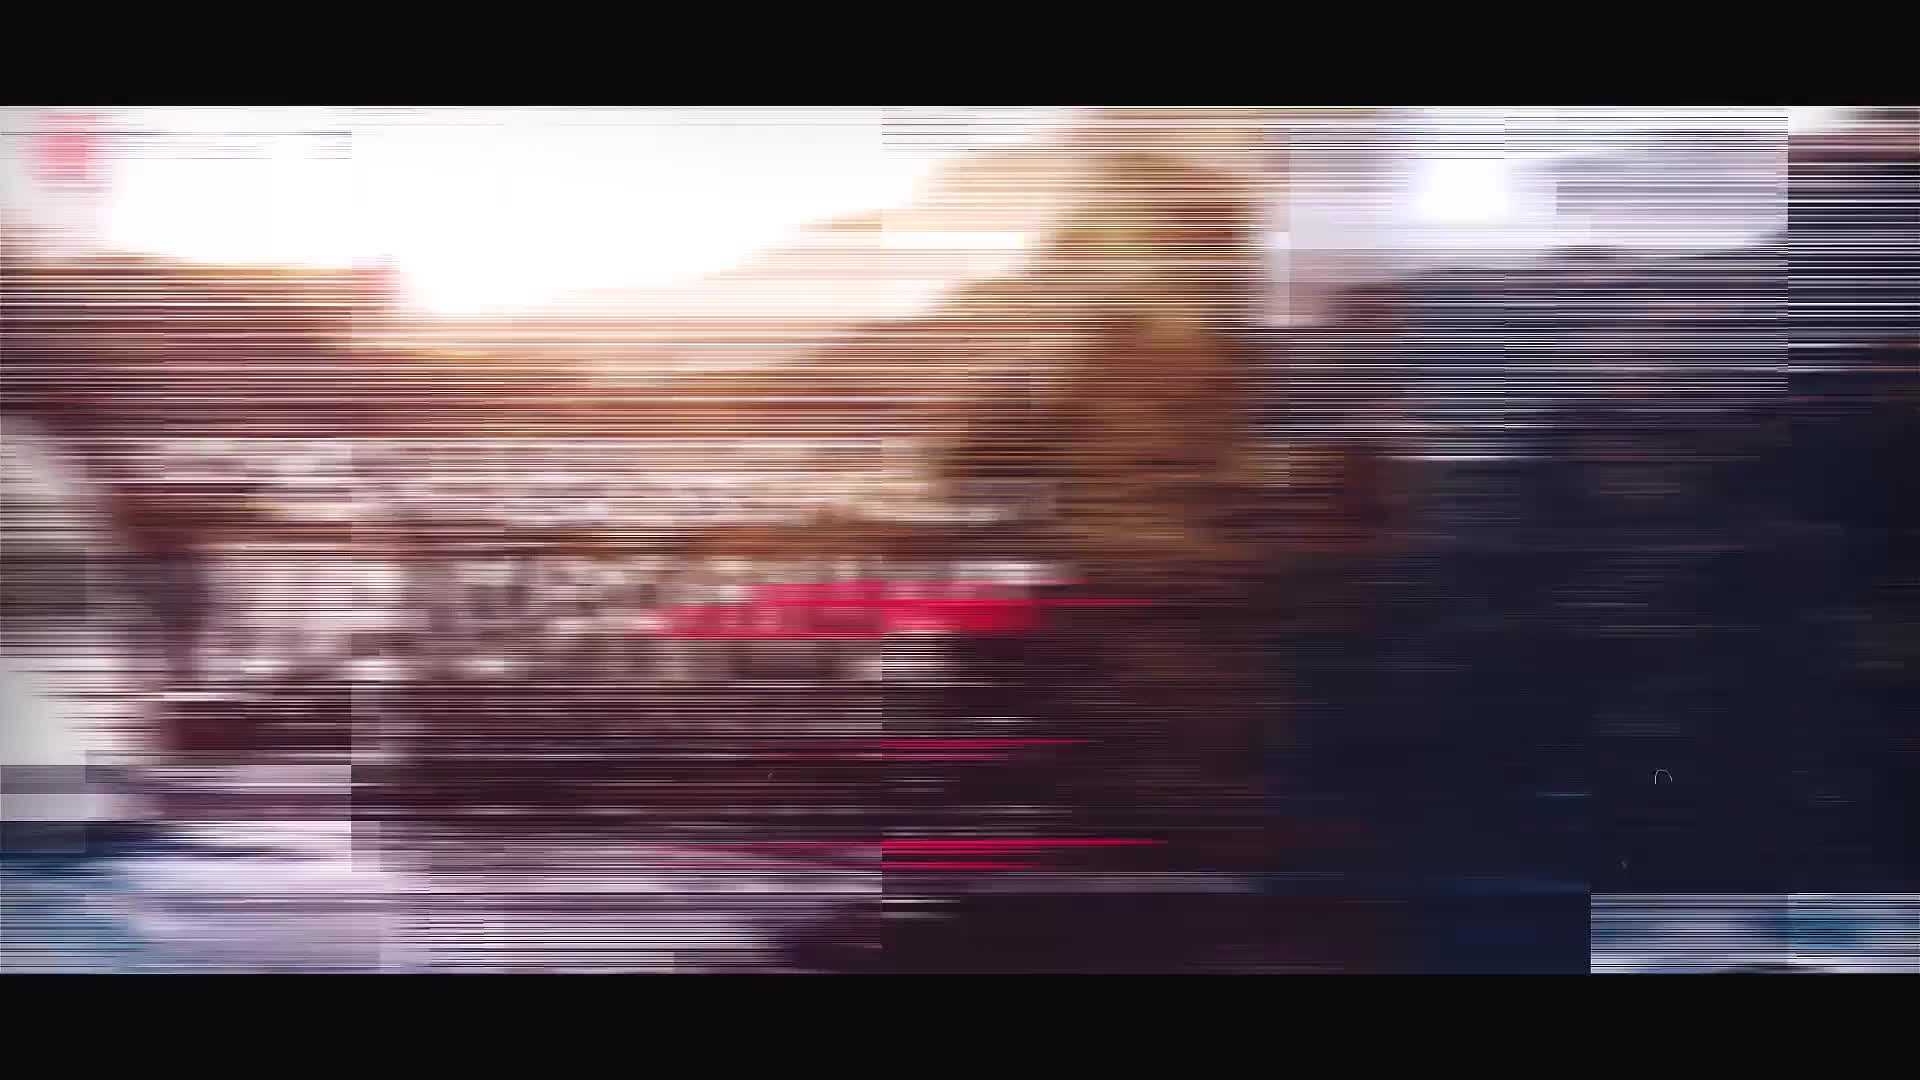 Abstract Urban Slide - Download Videohive 20474827